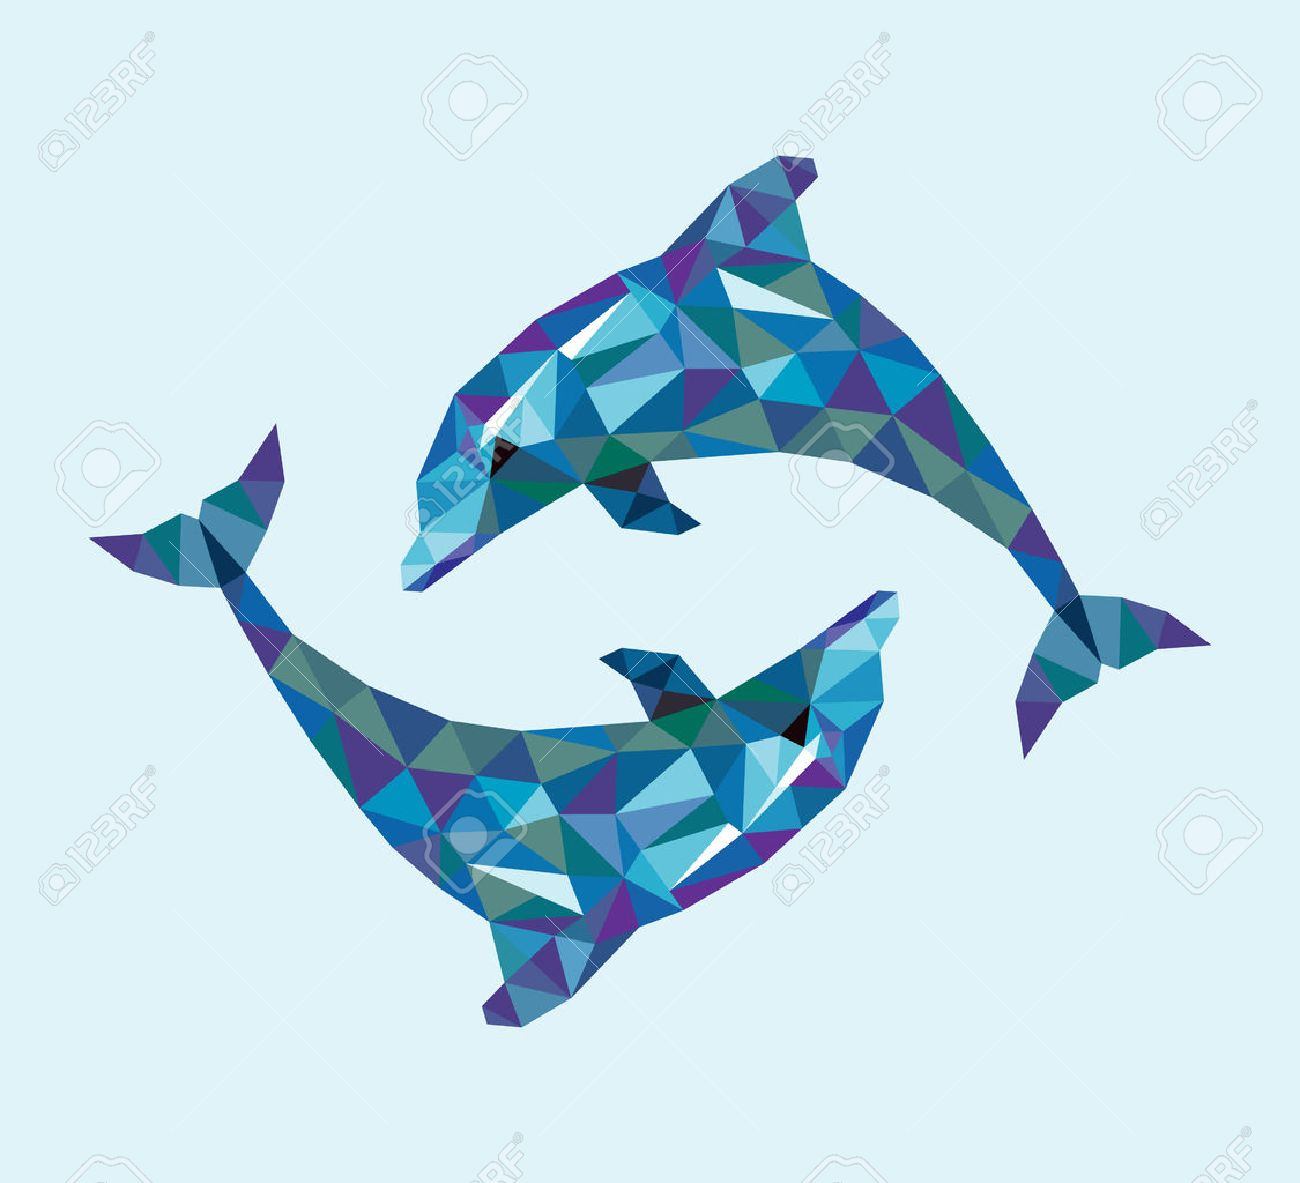 Dolphin images stock pictures royalty free dolphin photos and dolphin triangle low polygon style nice and clean vector good use for your symbol pronofoot35fo Choice Image